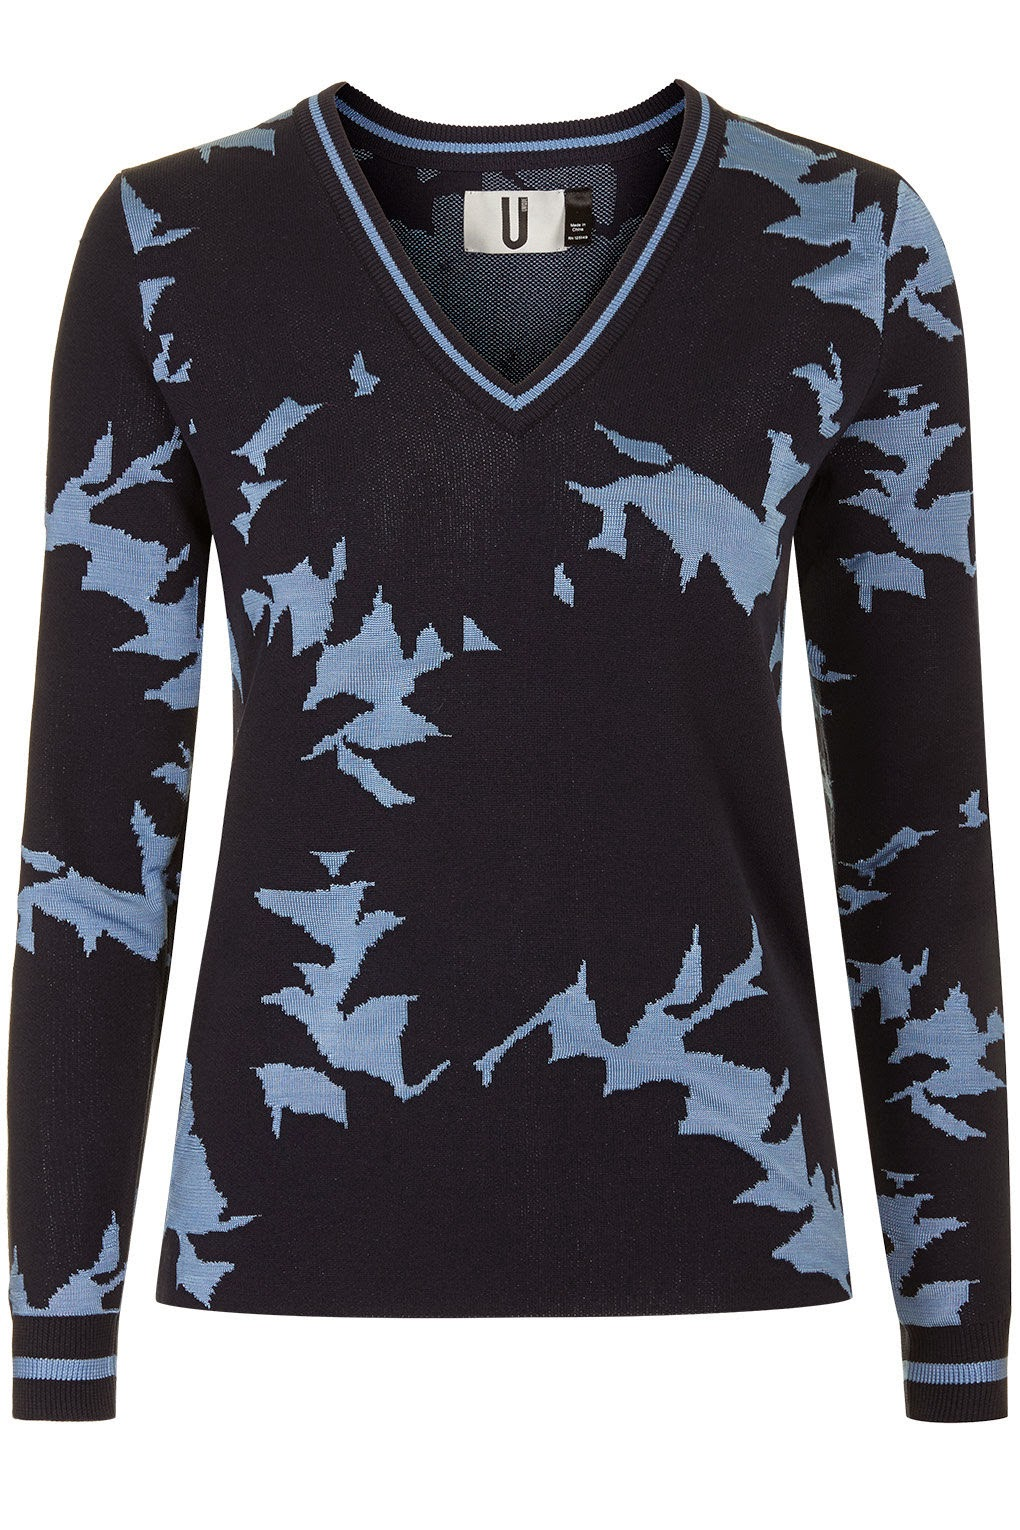 blue floral v neck jumper, topshop blue v neck jumper,